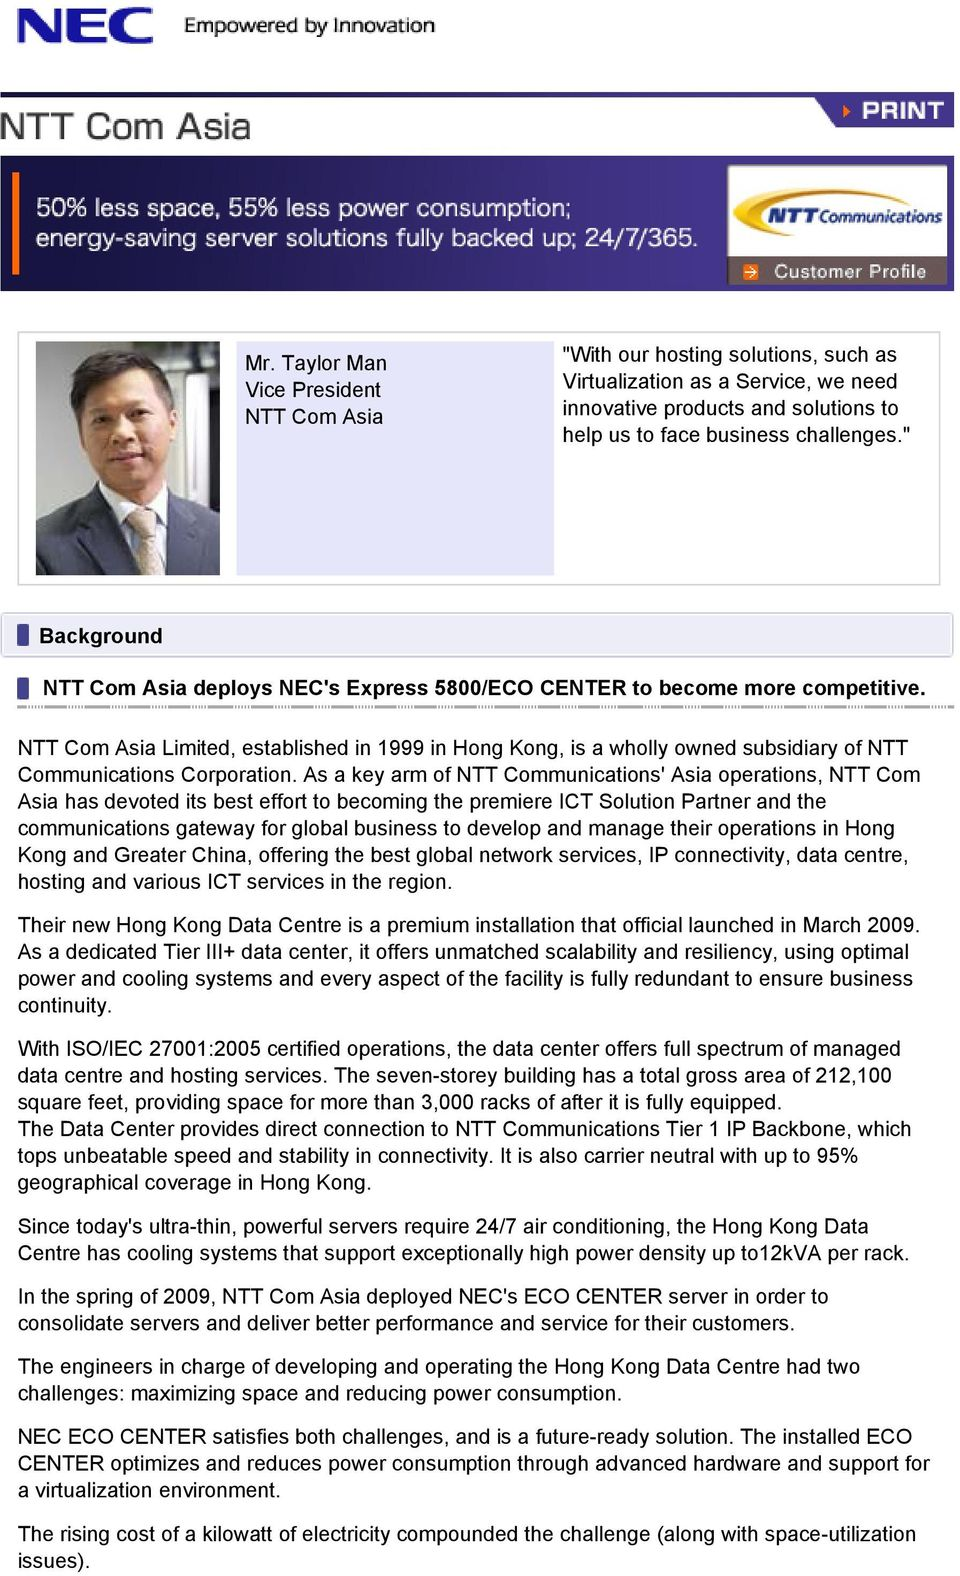 NTT Com Asia Limited, established in 1999 in Hong Kong, is a wholly owned subsidiary of NTT Communications Corporation.